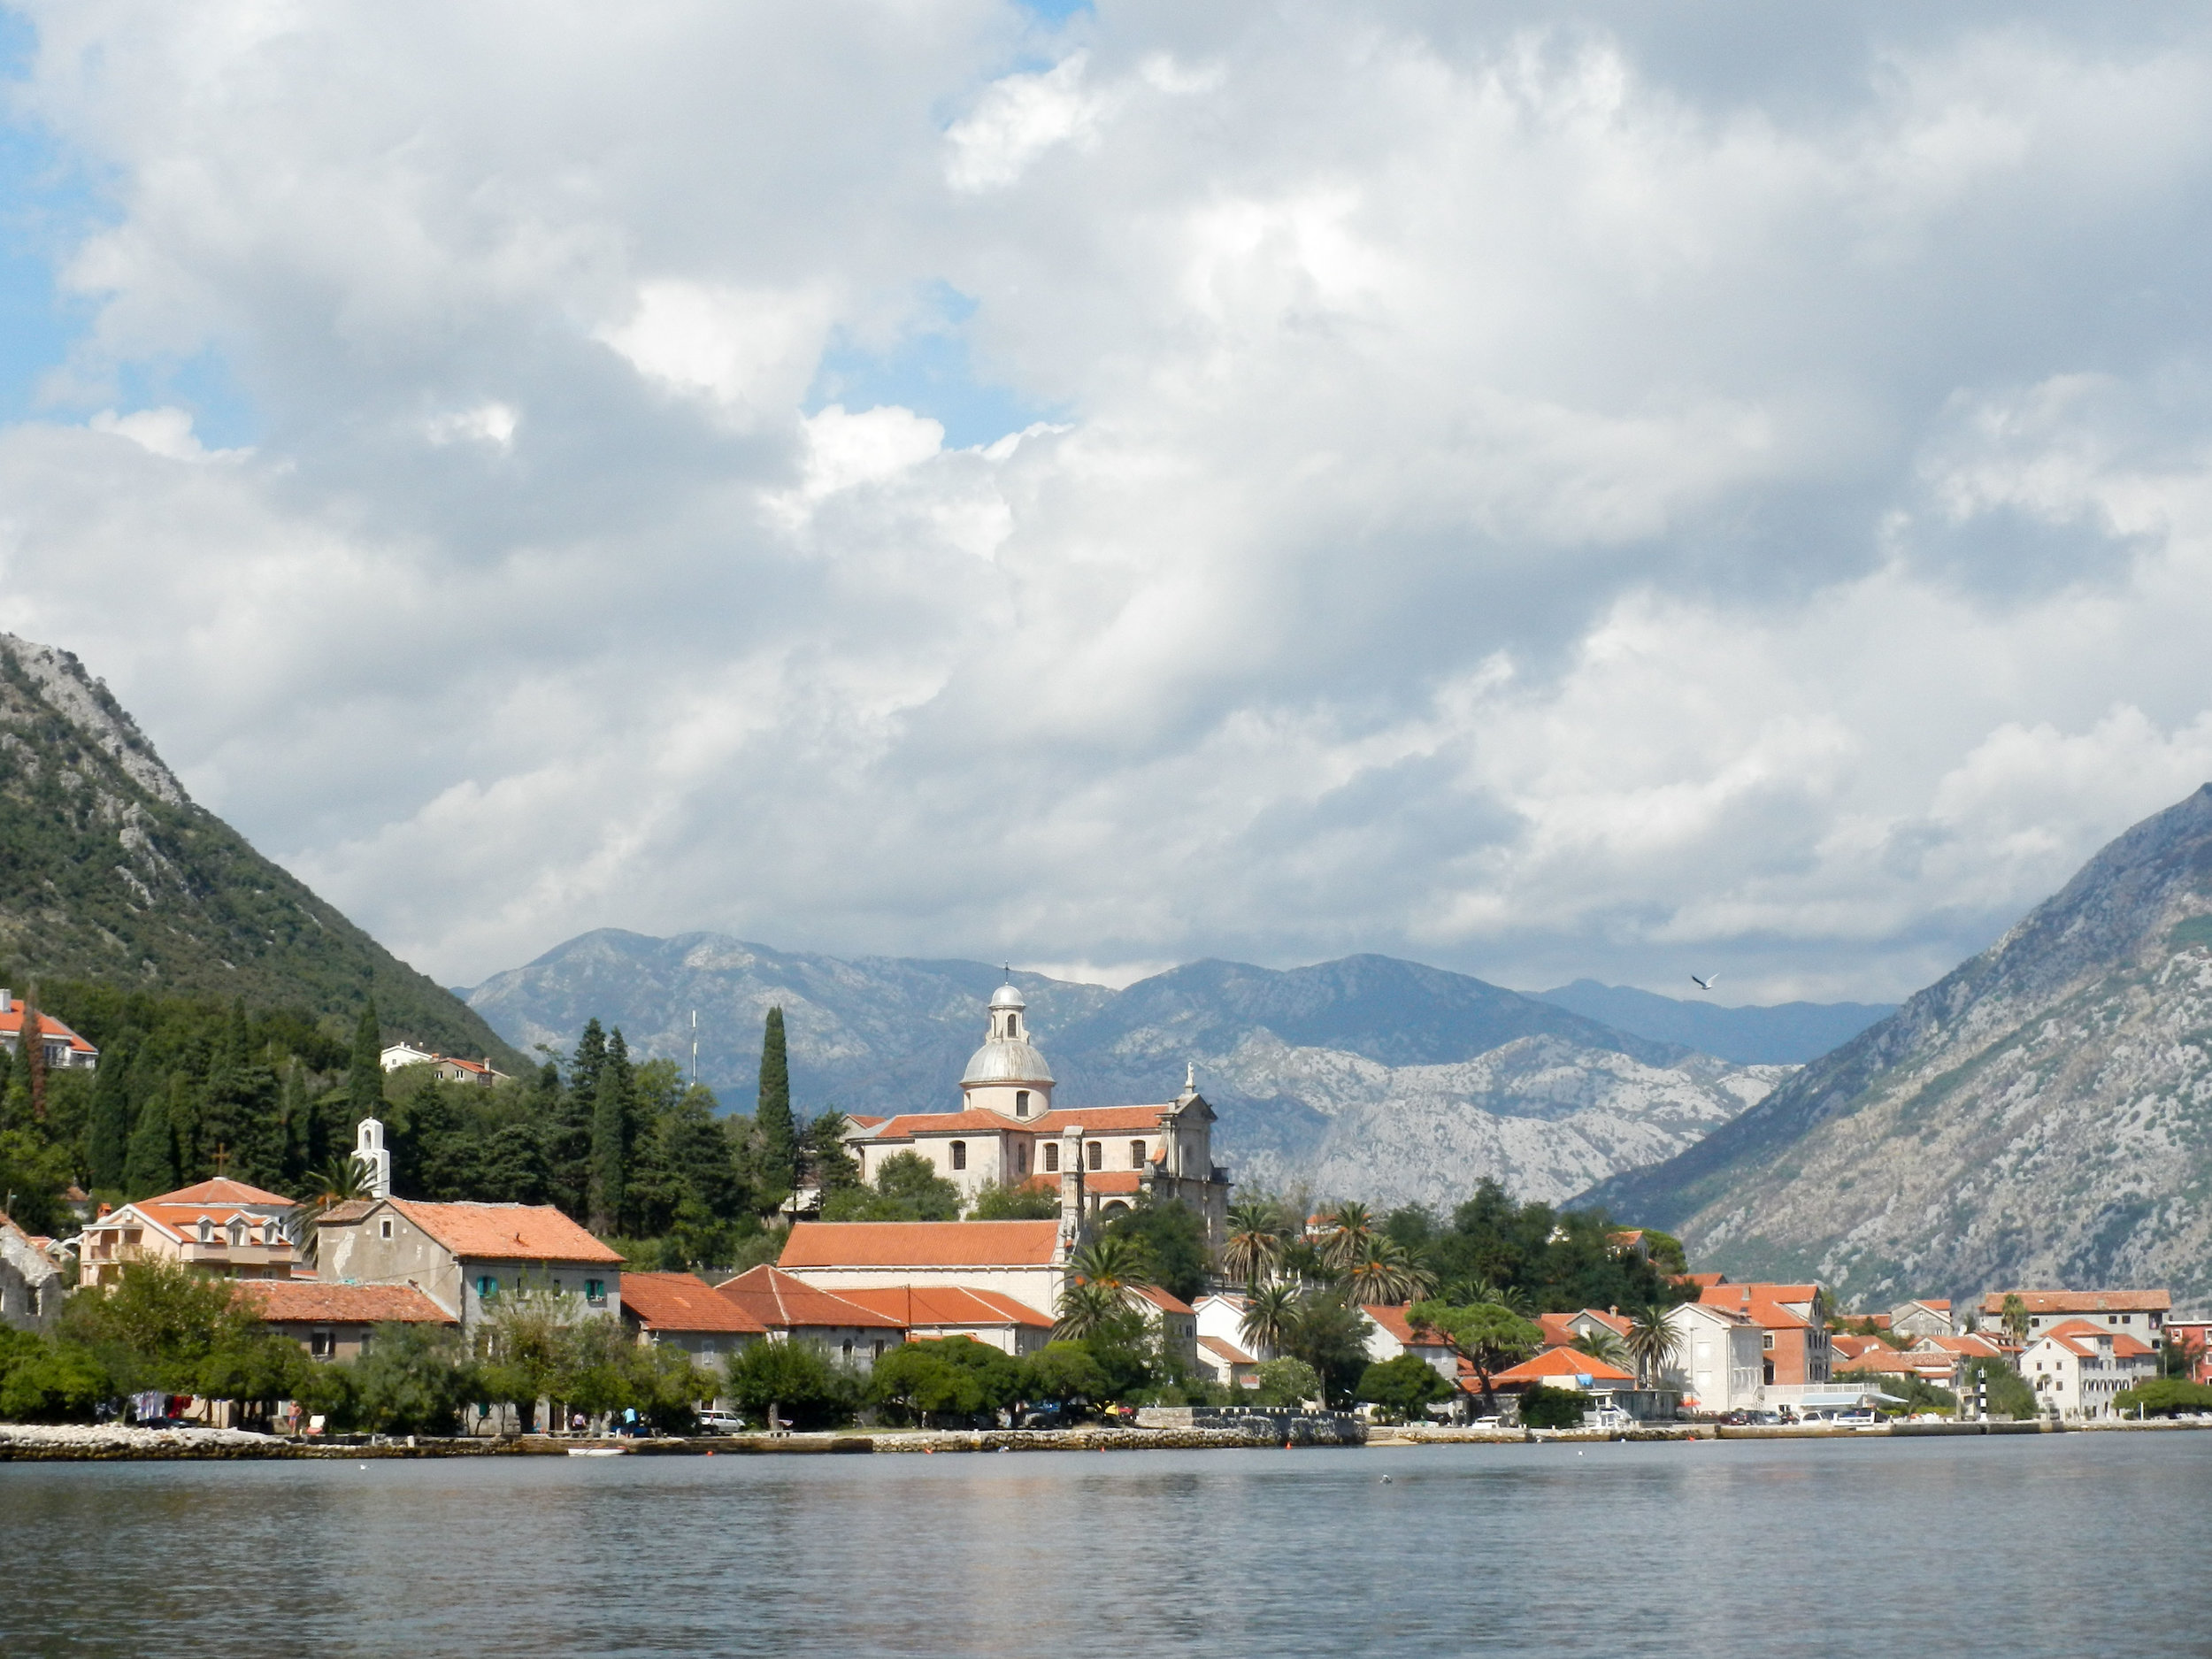 Scenery from kayak, Kotor, Montenegro